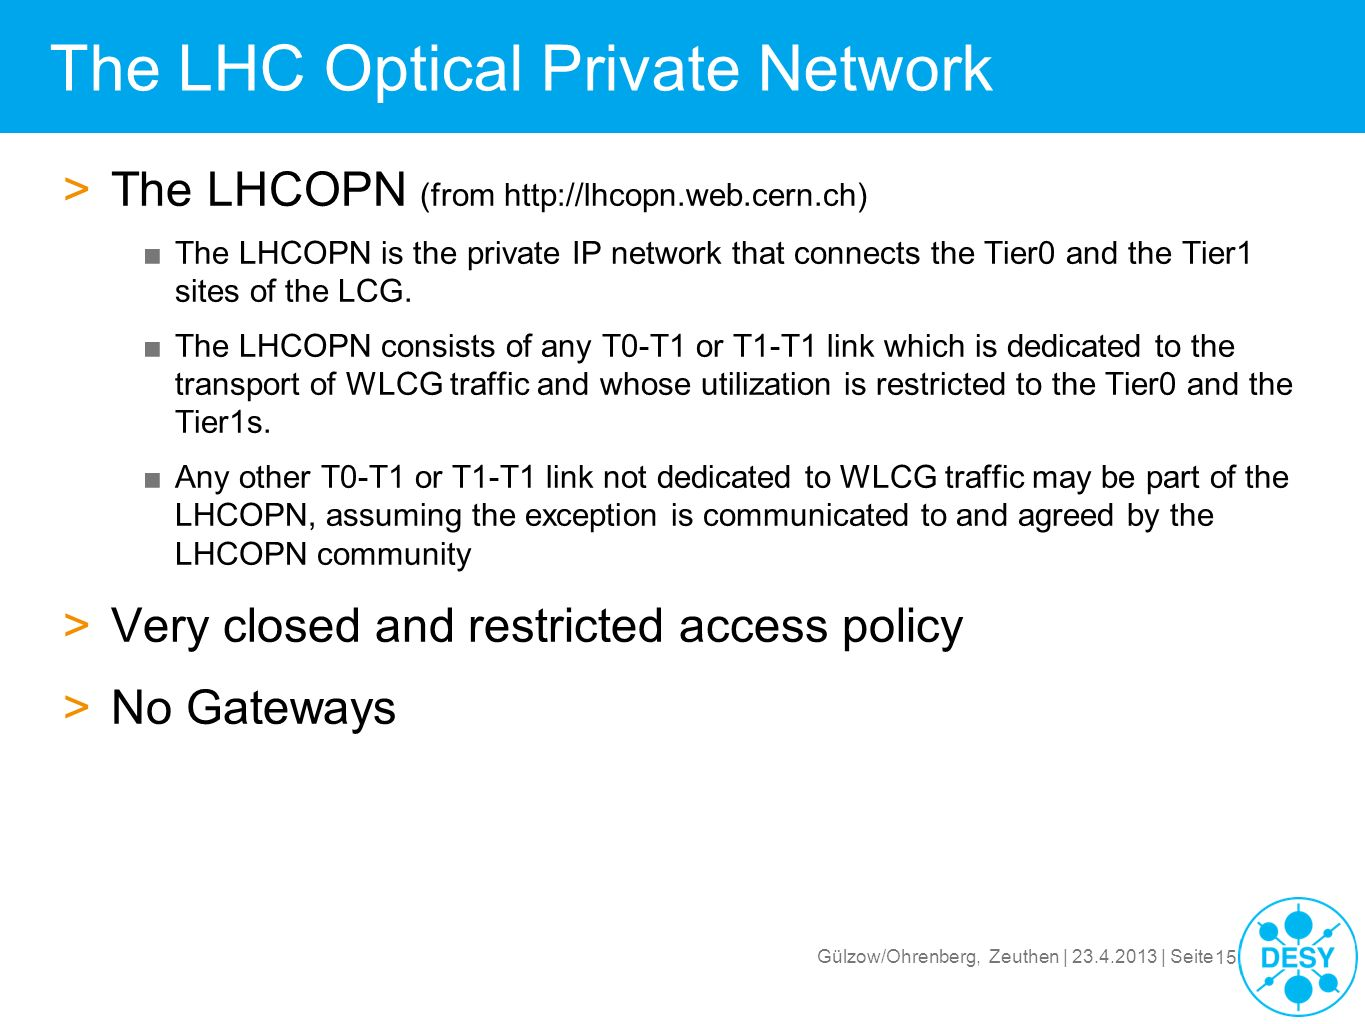 The LHC Optical Private Network